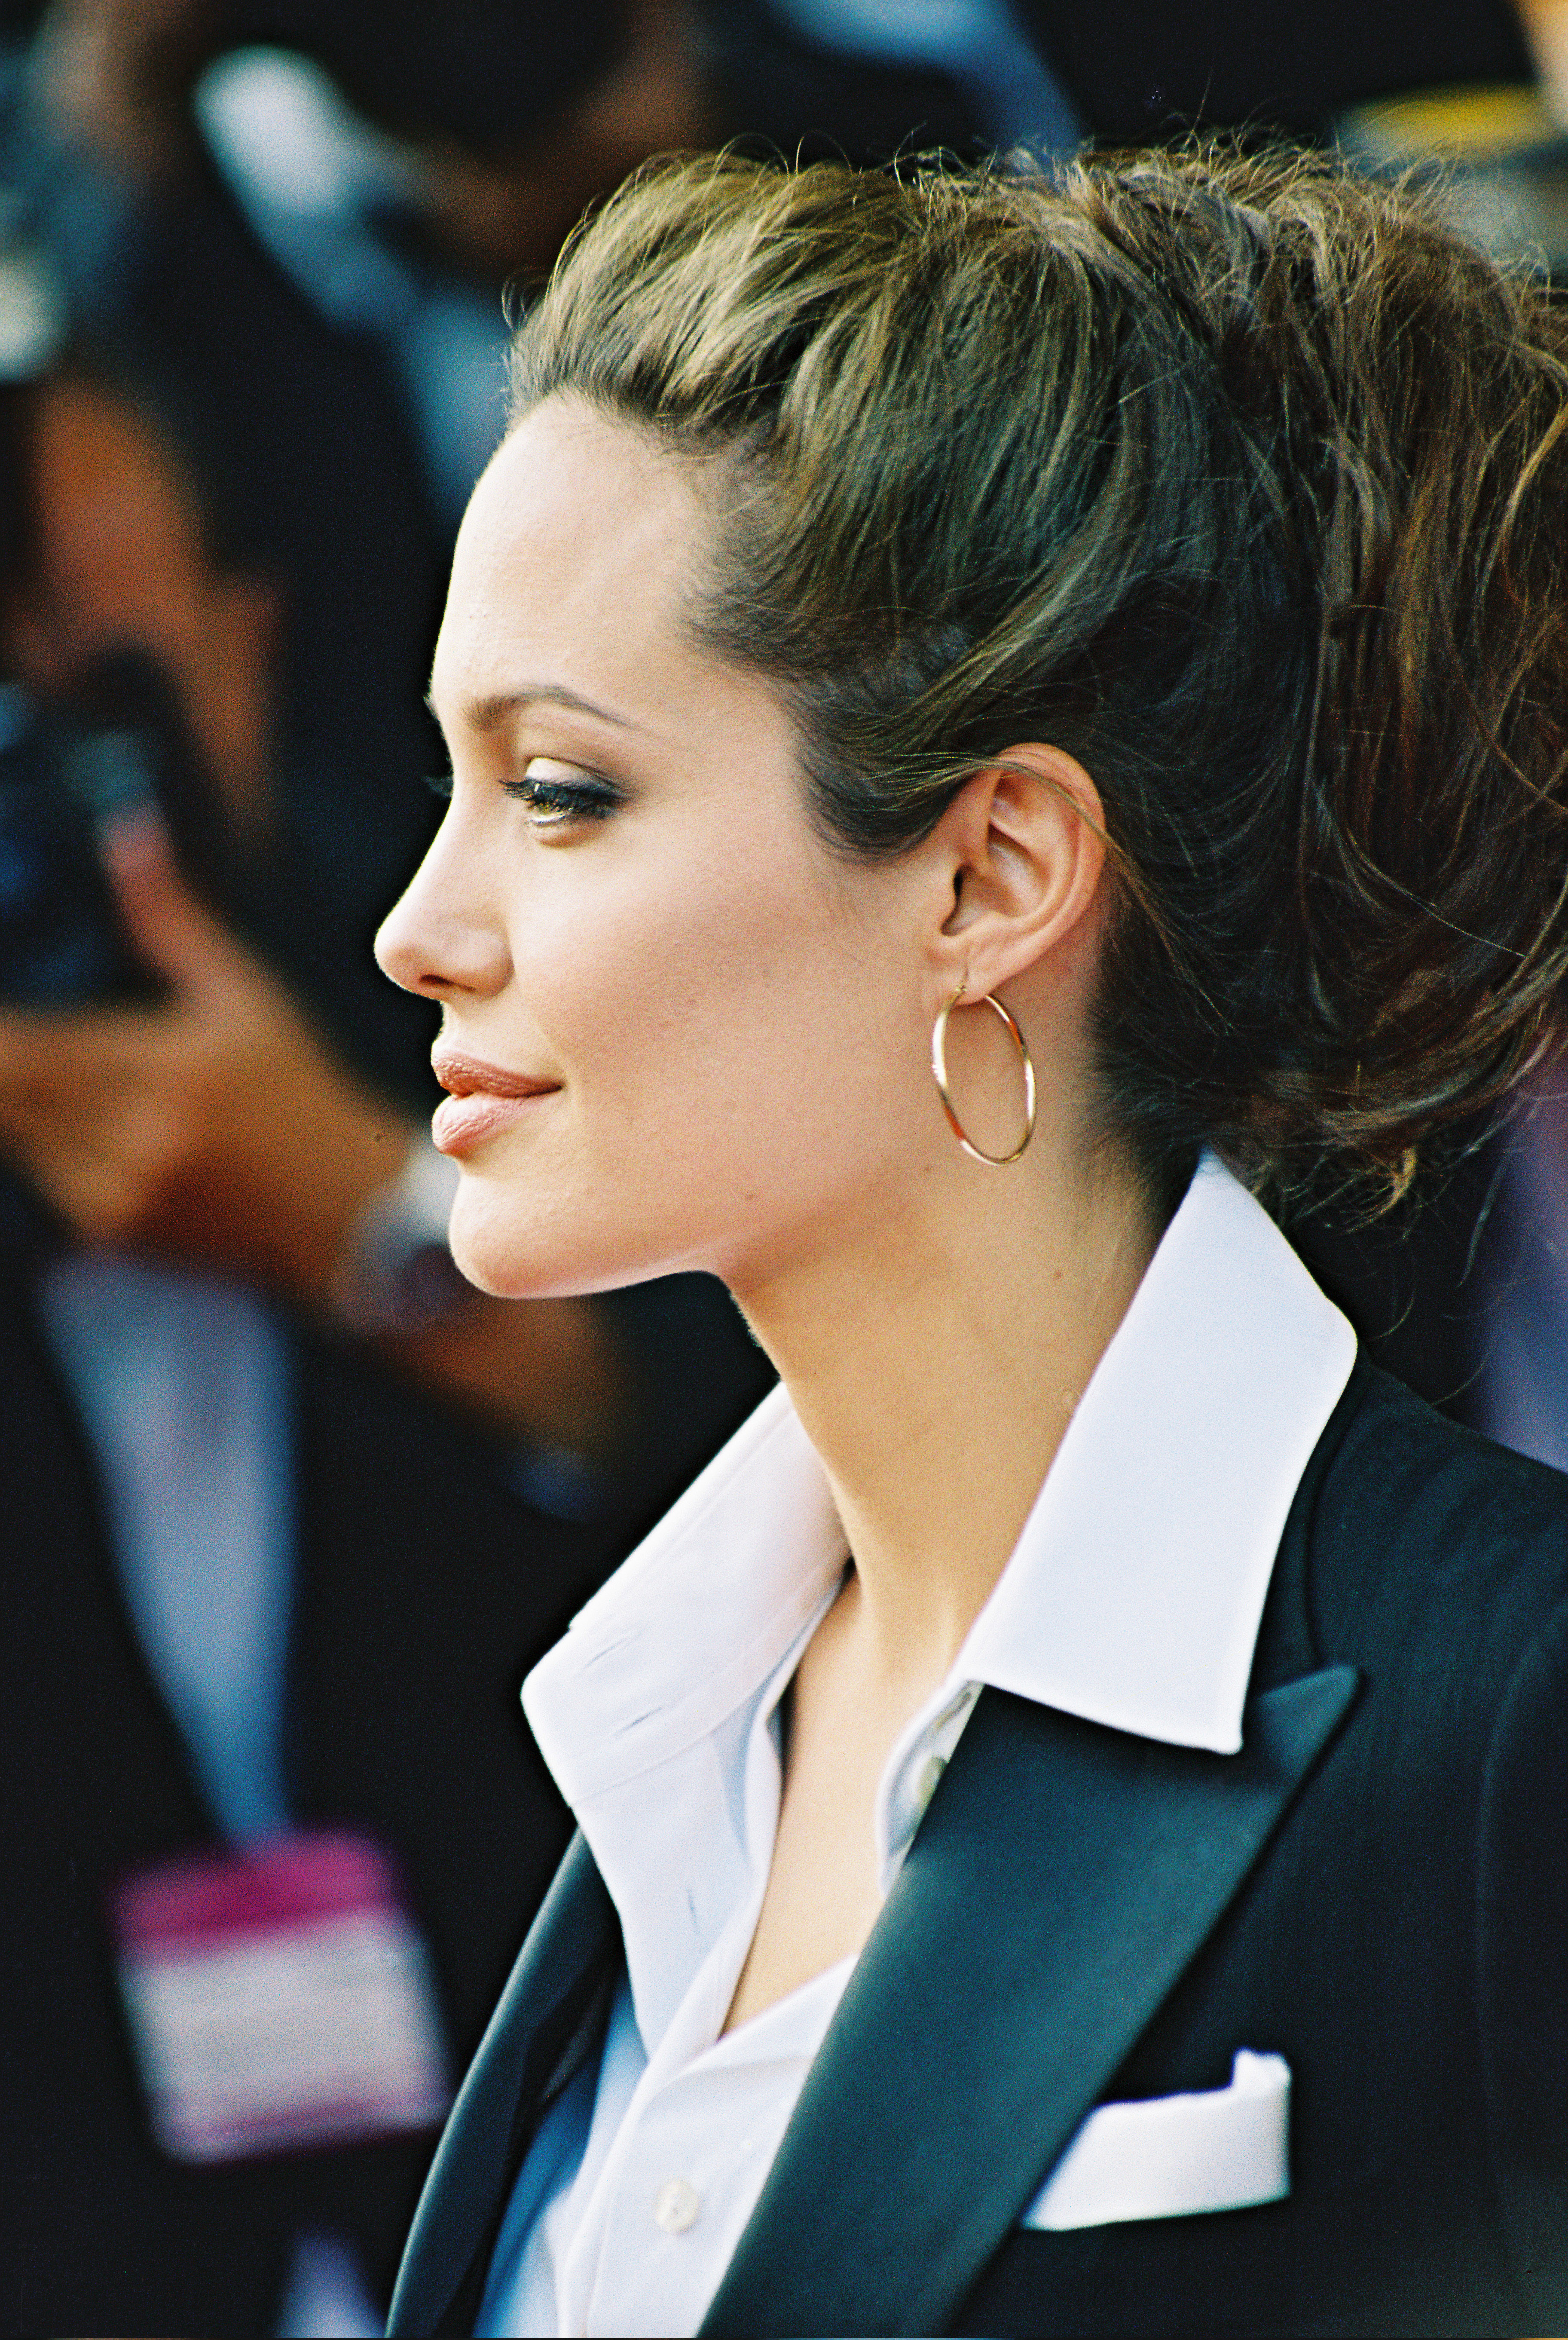 angelina jolie at the shrek 2 premiere at the cannes film festival